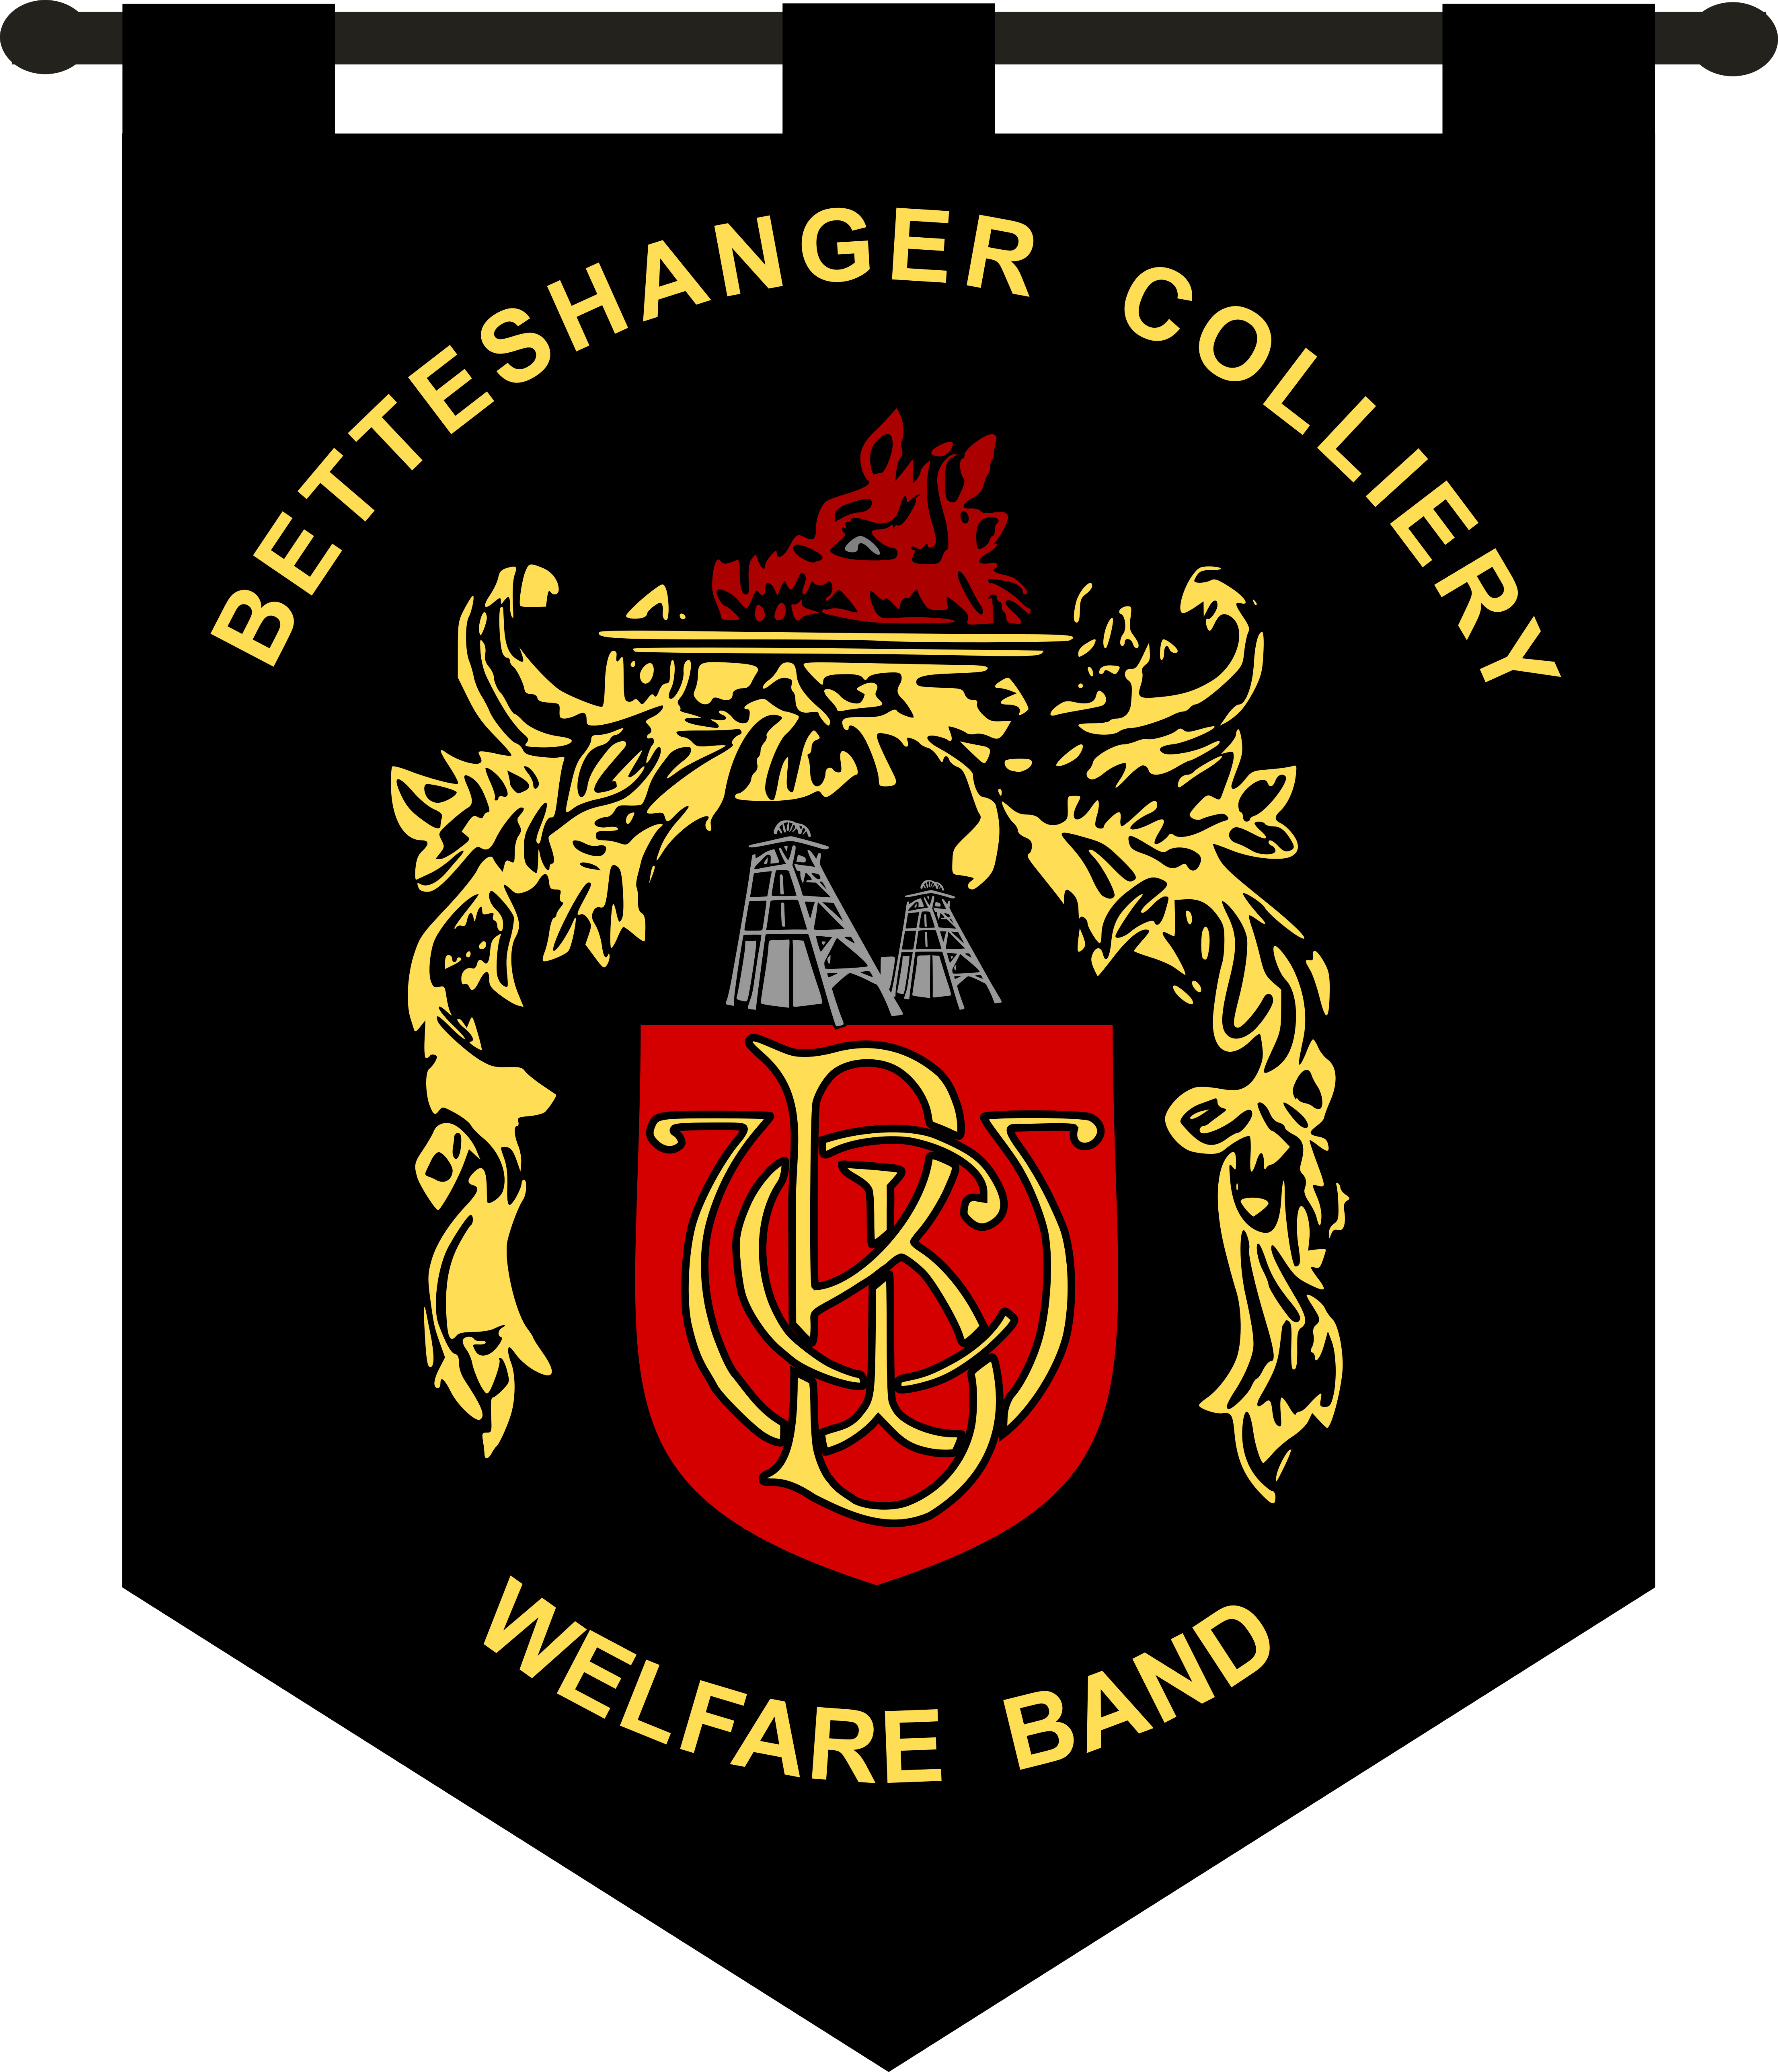 Betteshanger Colliery Welfare Band